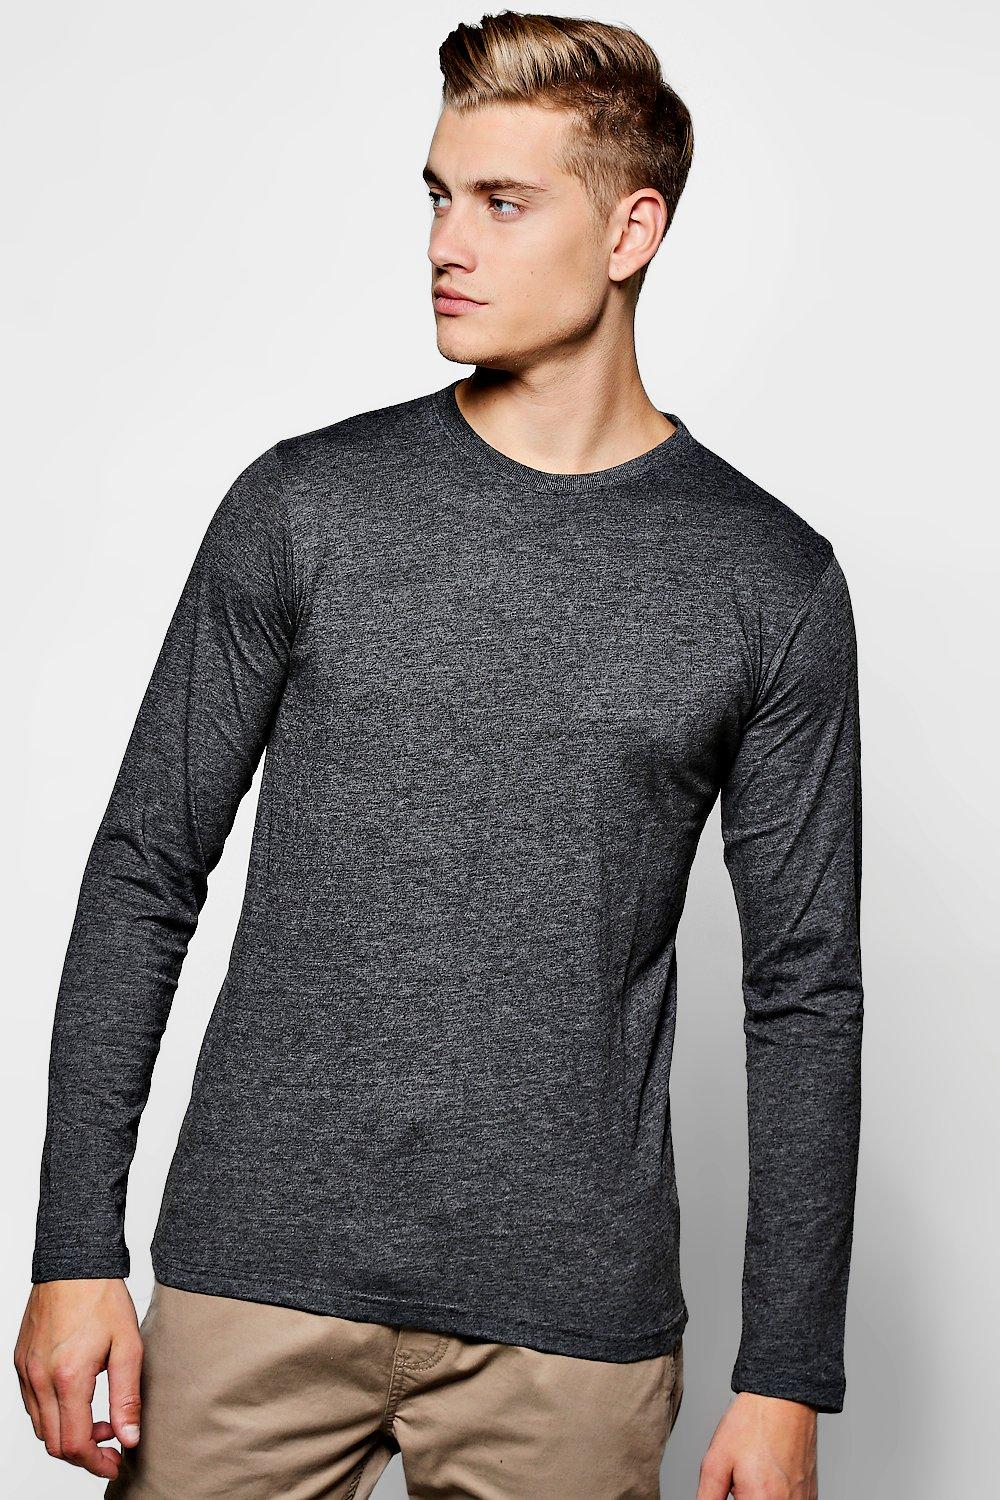 boohooMAN charcoal Basic Long Sleeve Crew Neck T Shirt